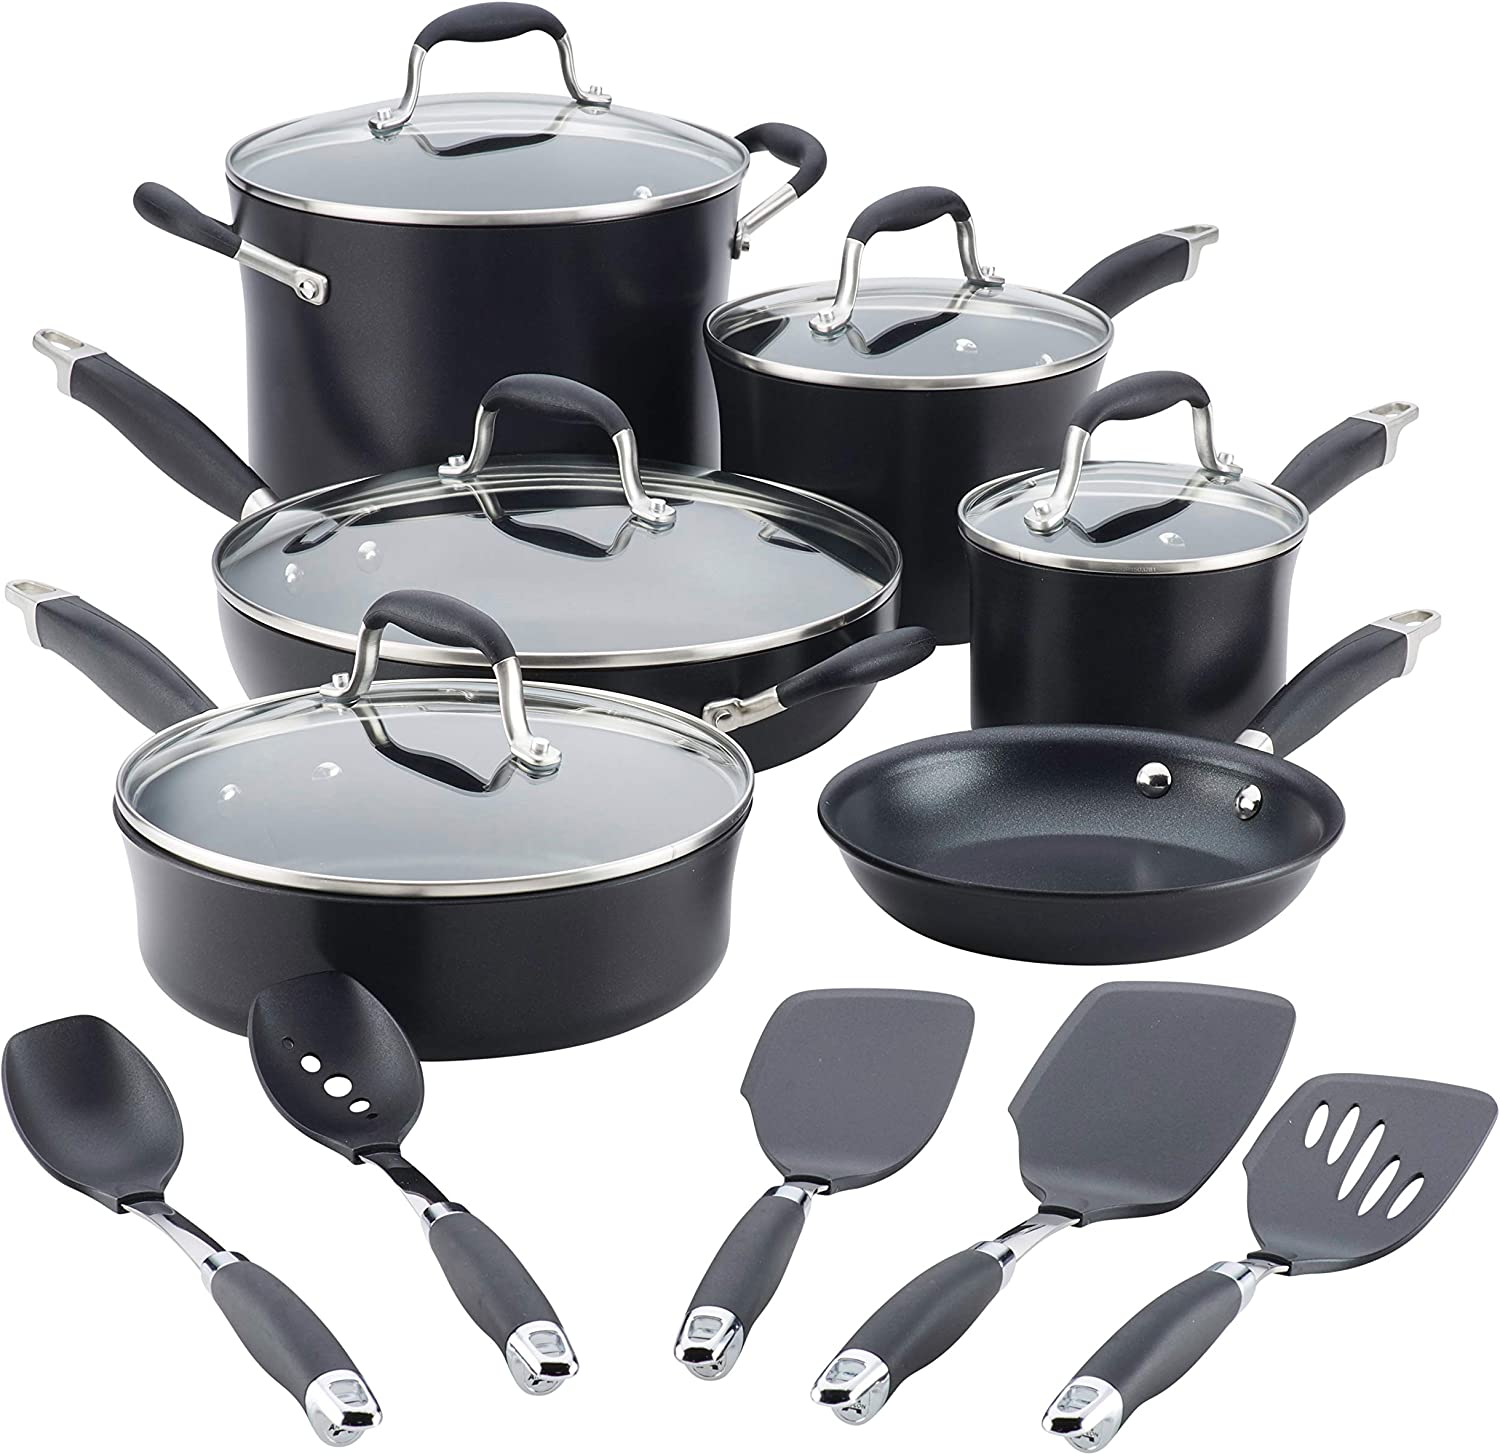 What is the best cookware for gas stoves - Anolon cookware review